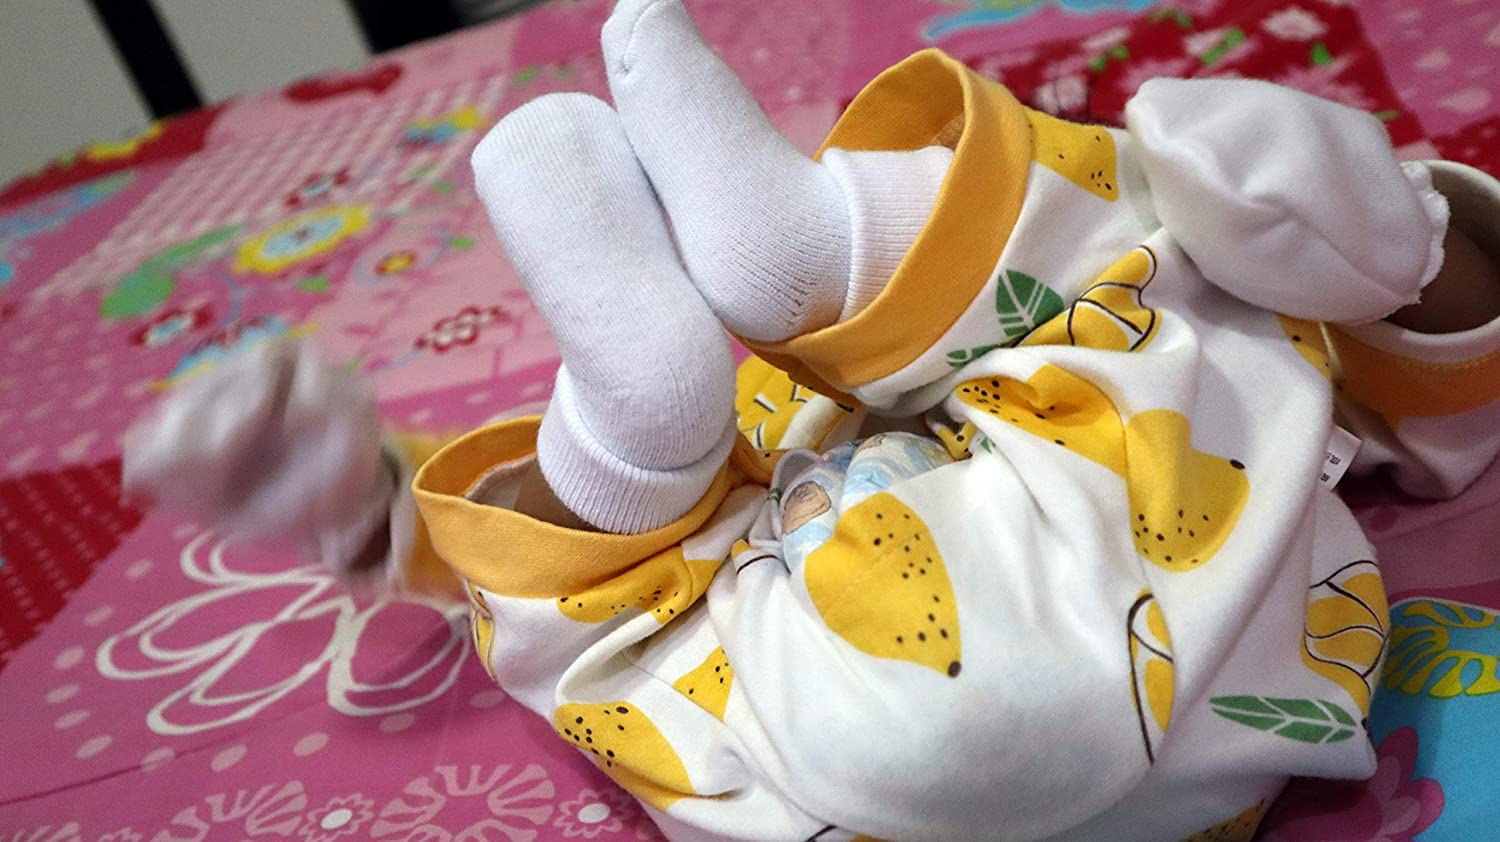 RATIVE Newborn 0-6 Month Thick Terry Turn Cuff Socks For Unisex Baby Boys and Girls